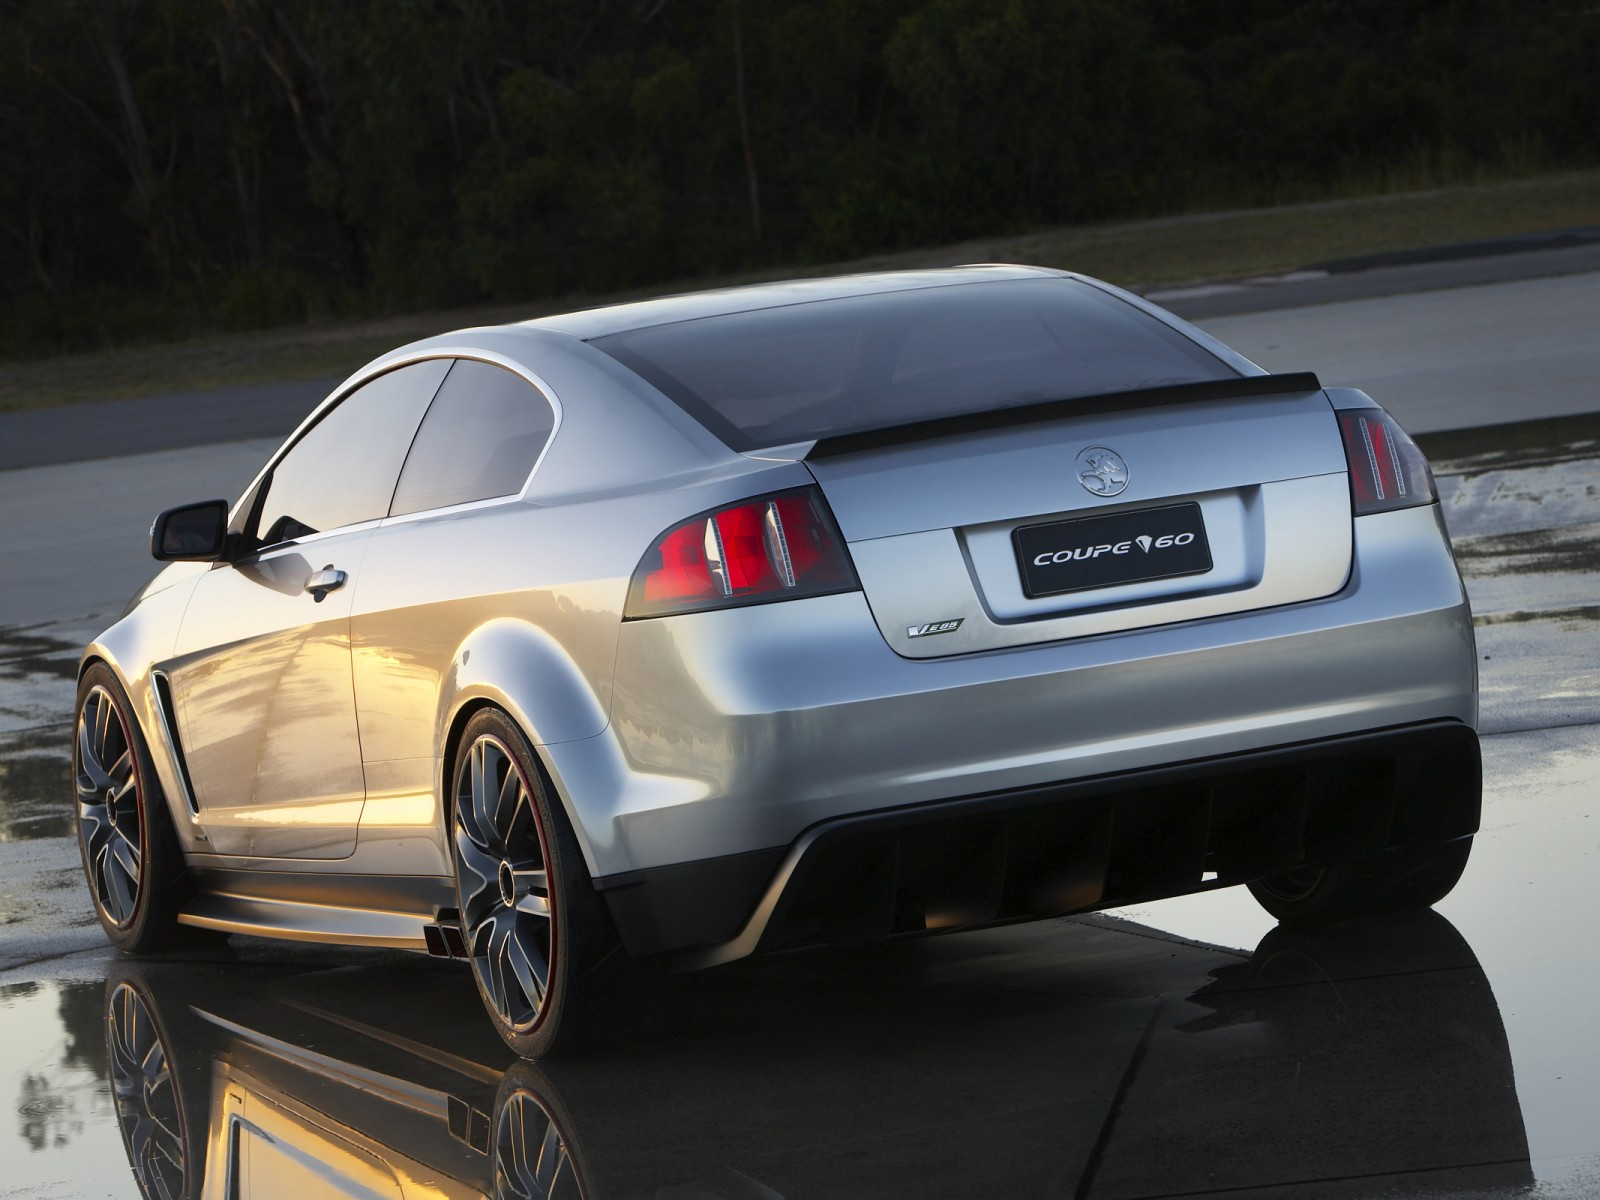 2008 holden coupe 60 concept wallpapers pictures specifications technical specifications make holden model coupe 60 concept vanachro Images